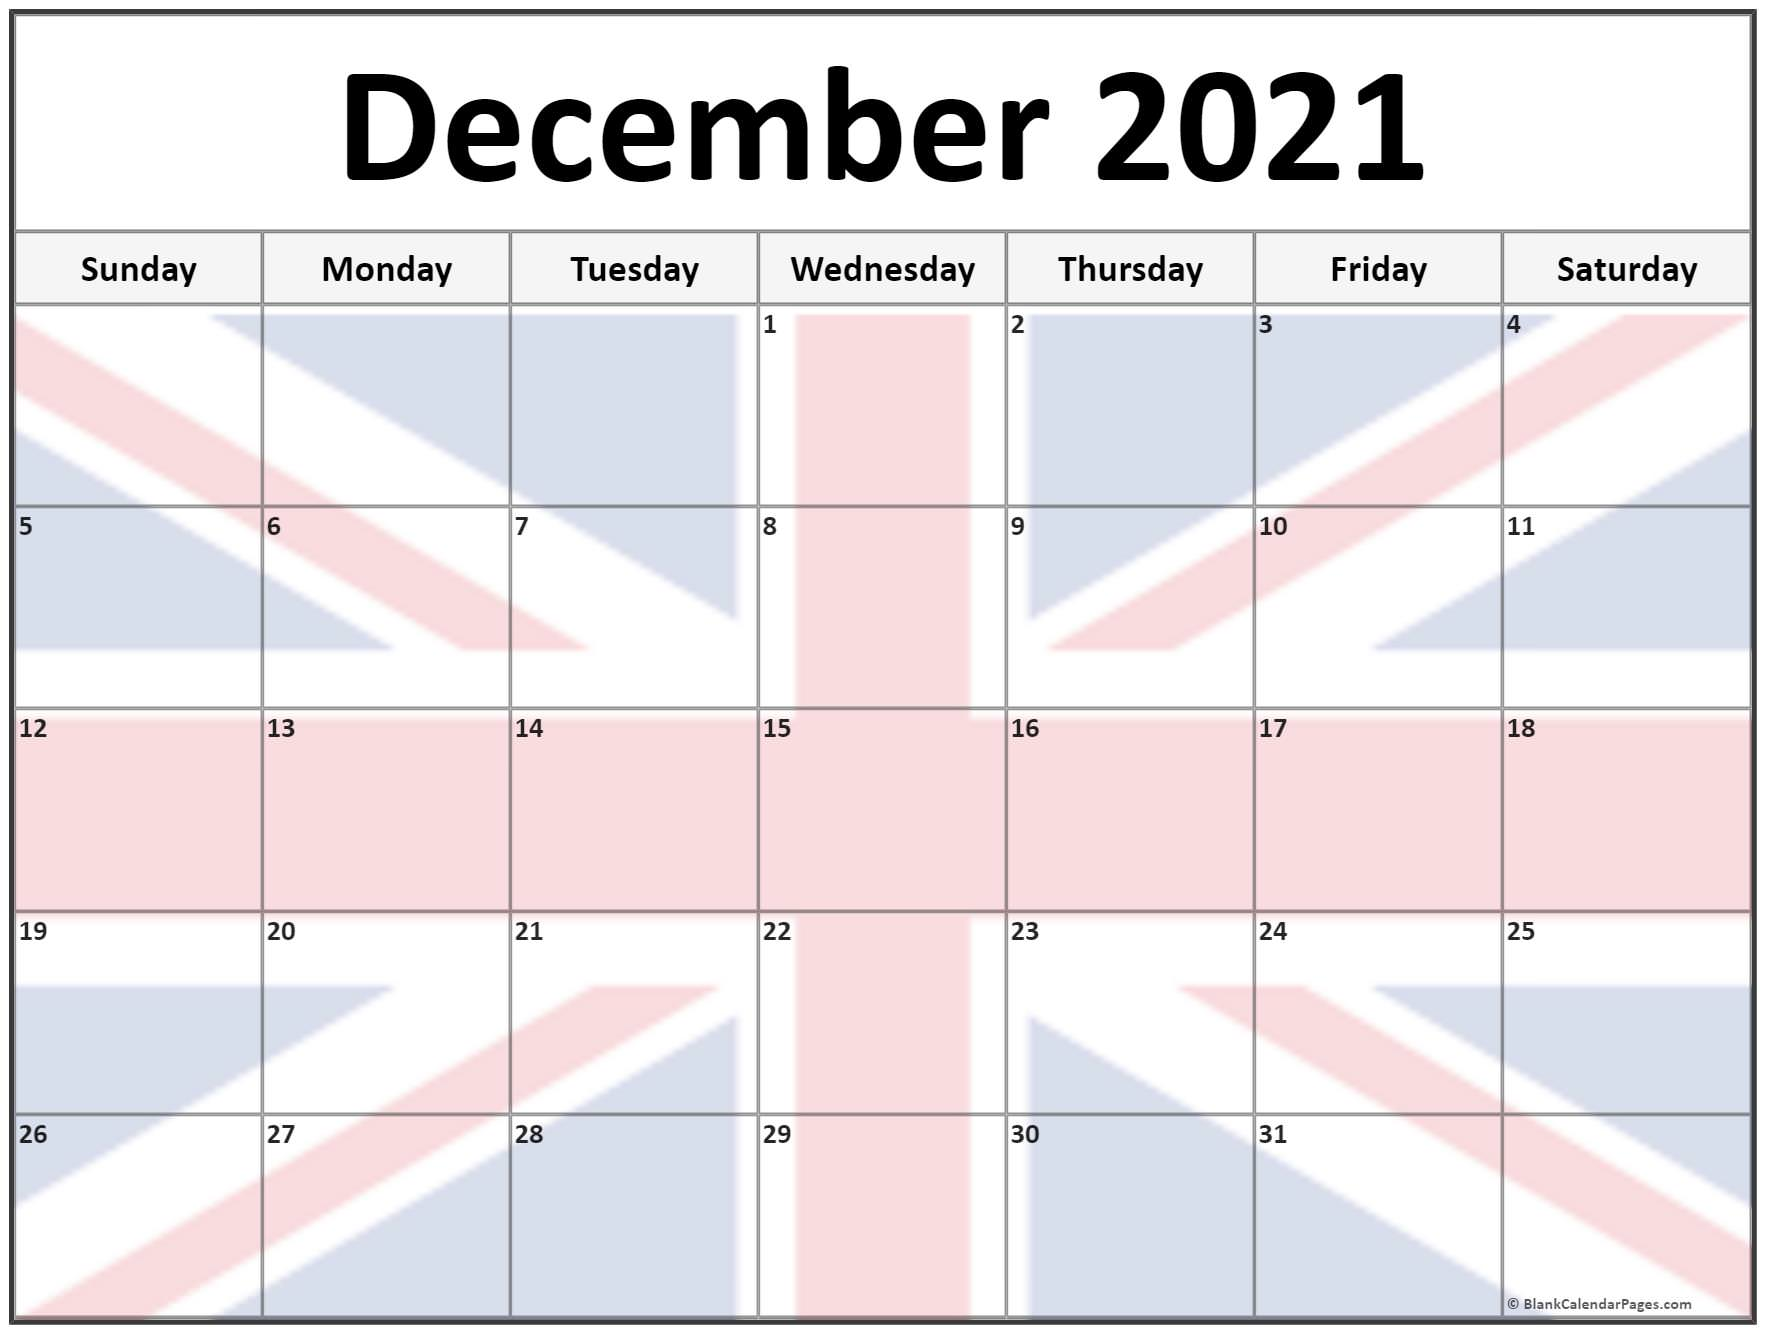 December 2021 UK flag picture calendar